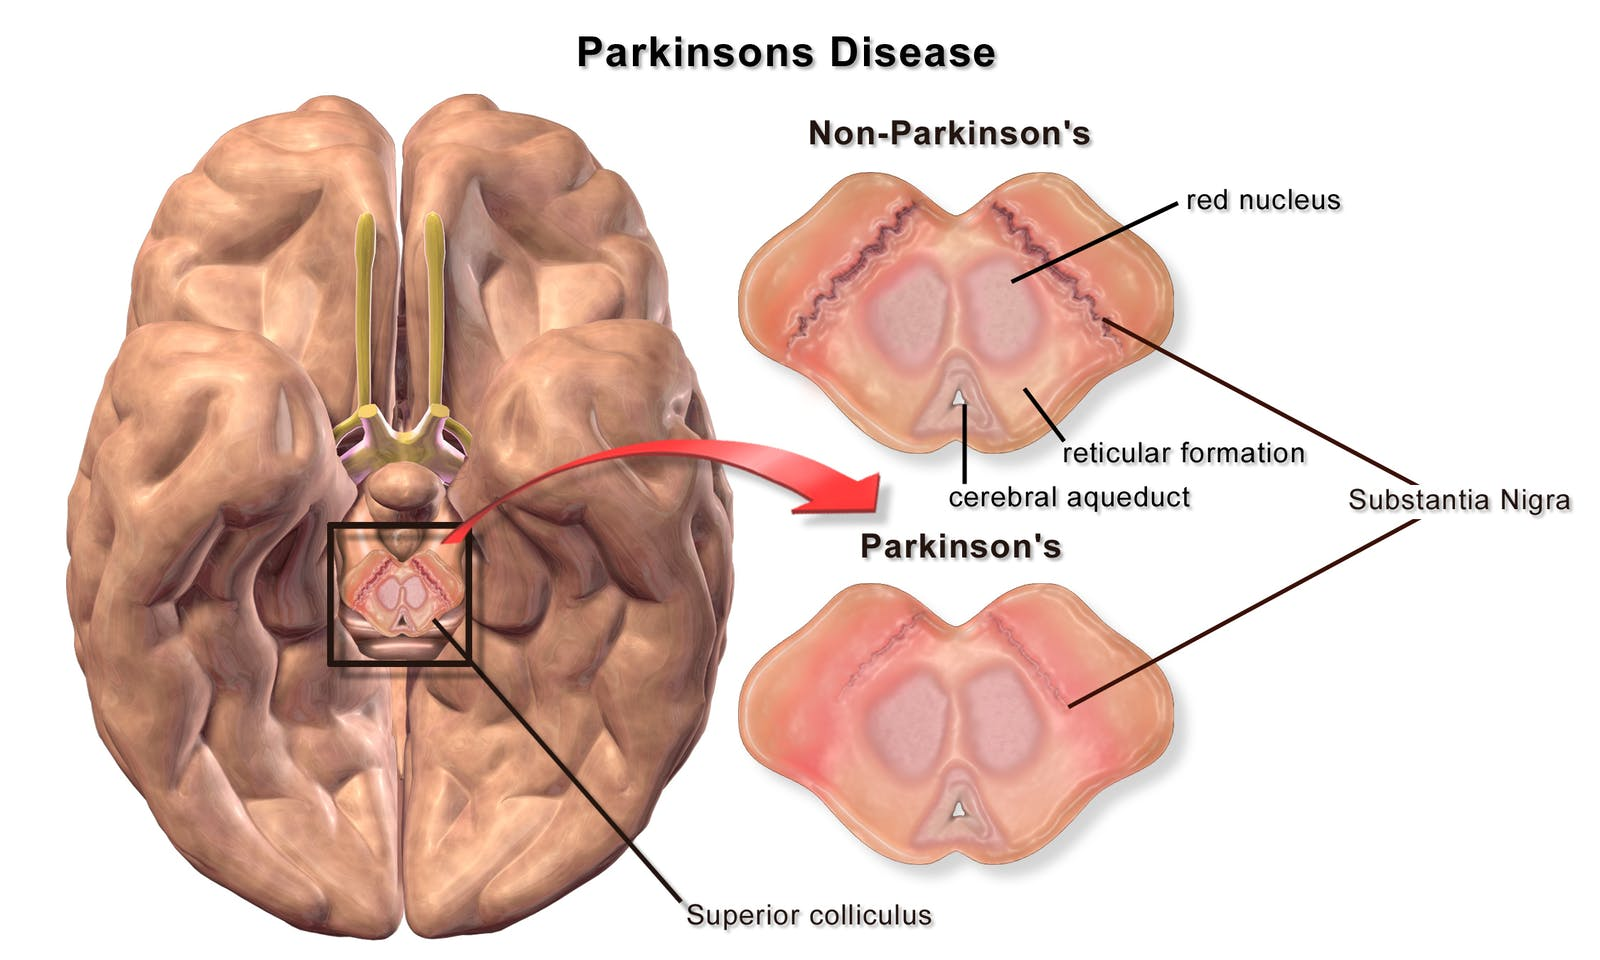 A bottom-up diagram of a brain of a patient with Parkinson's disease illustrating loss of pigmented cells in the Substantia nigra